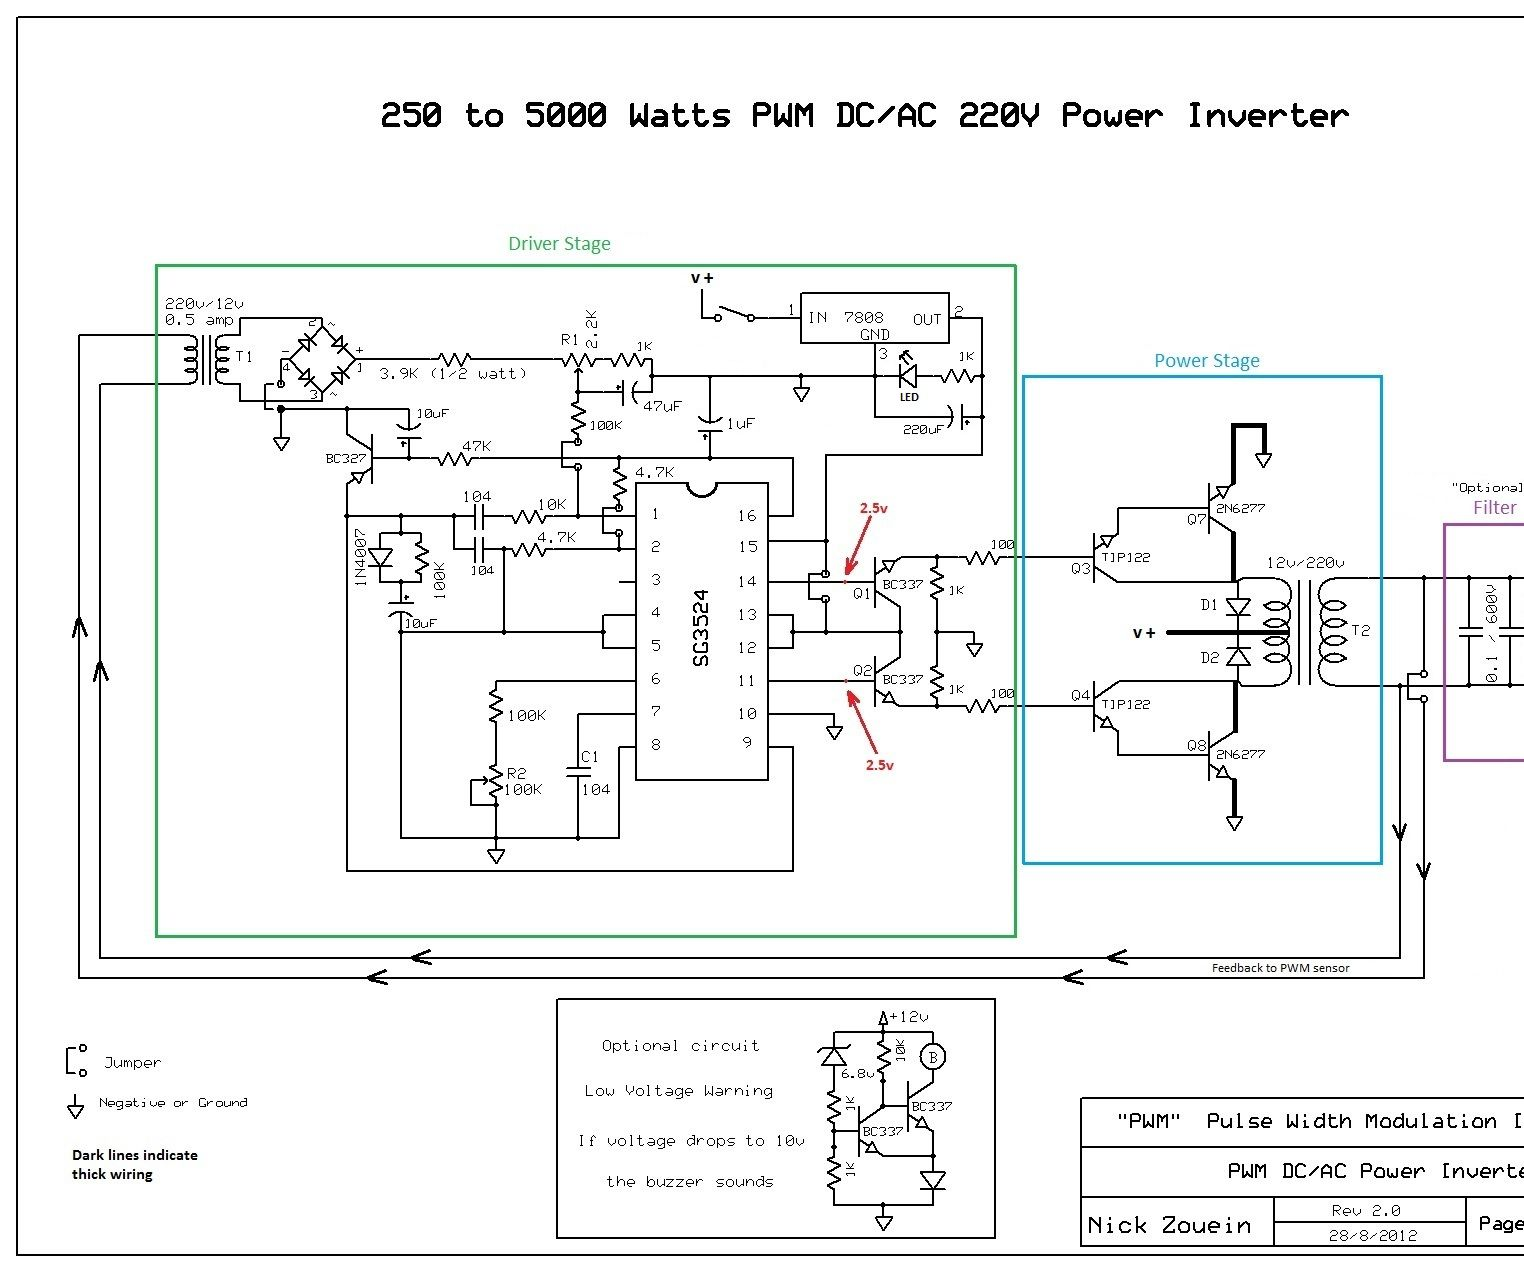 hight resolution of 250 to 5000 watts pwm dc ac 220v power inverter ac inverter circuit diagram likewise solar panel micro inverter wiring